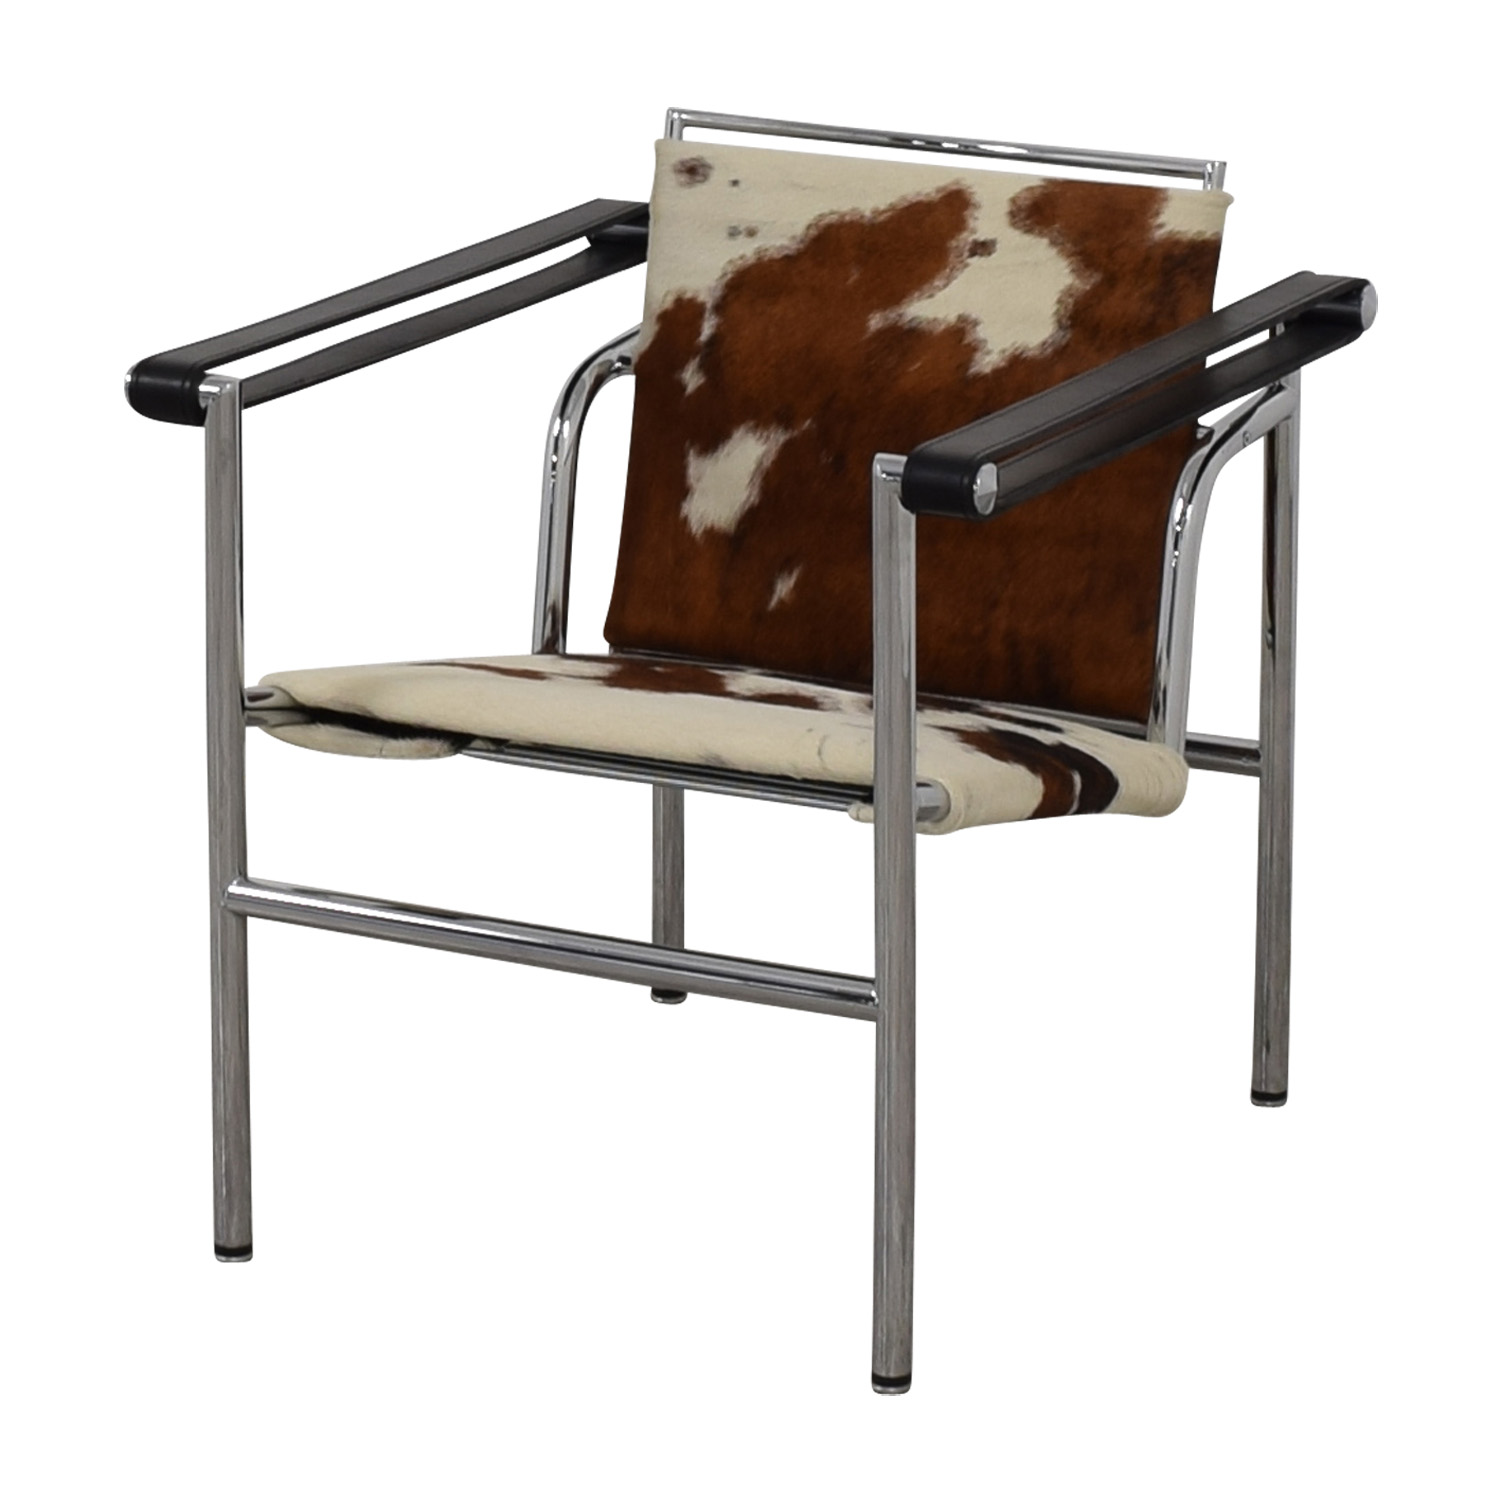 51 off design within reach design within reach le corbusier cowhide sling chair chairs